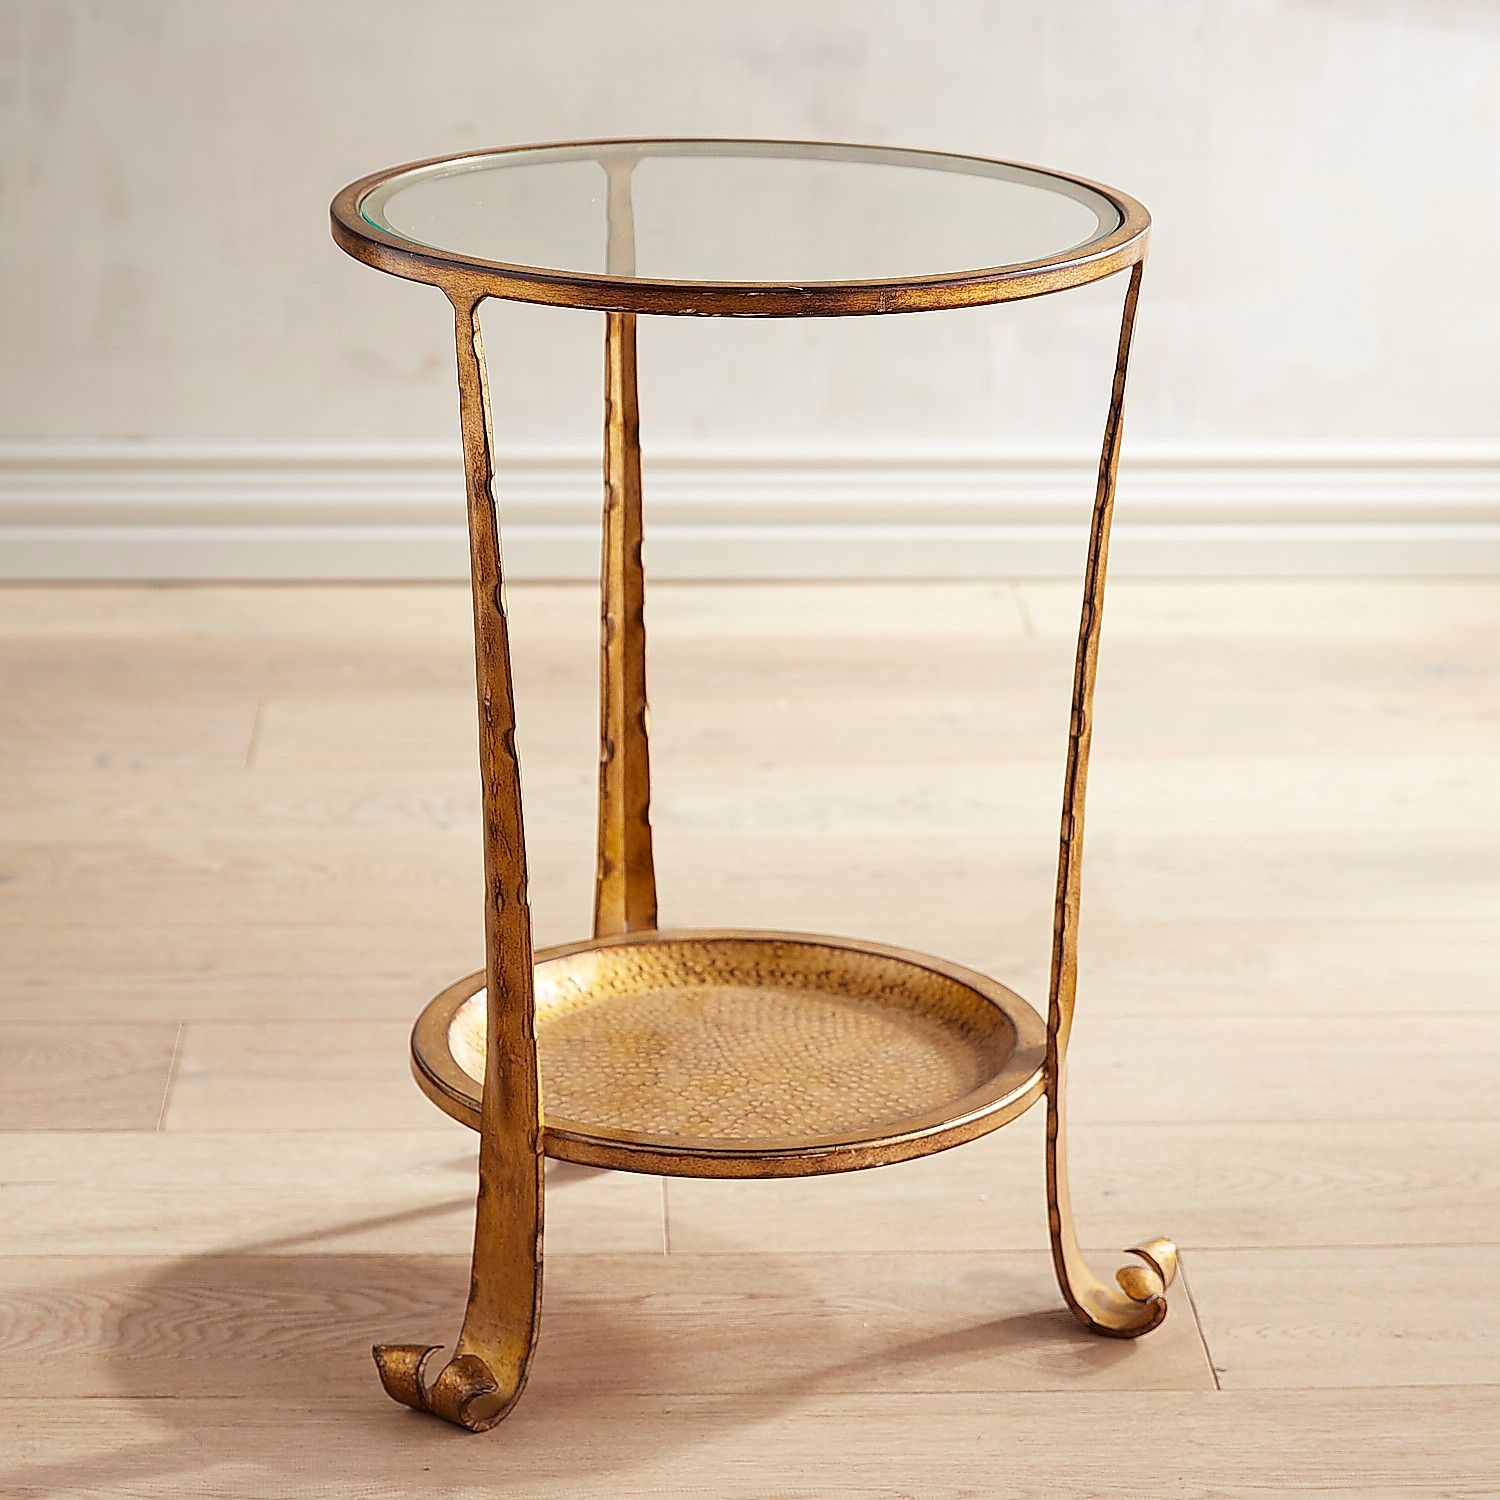 dansby gold end table pier imports hammered accent bunnings garden furniture contemporary dining chairs outdoor beverage small lamp patio tile with umbrella hole ikea plastic